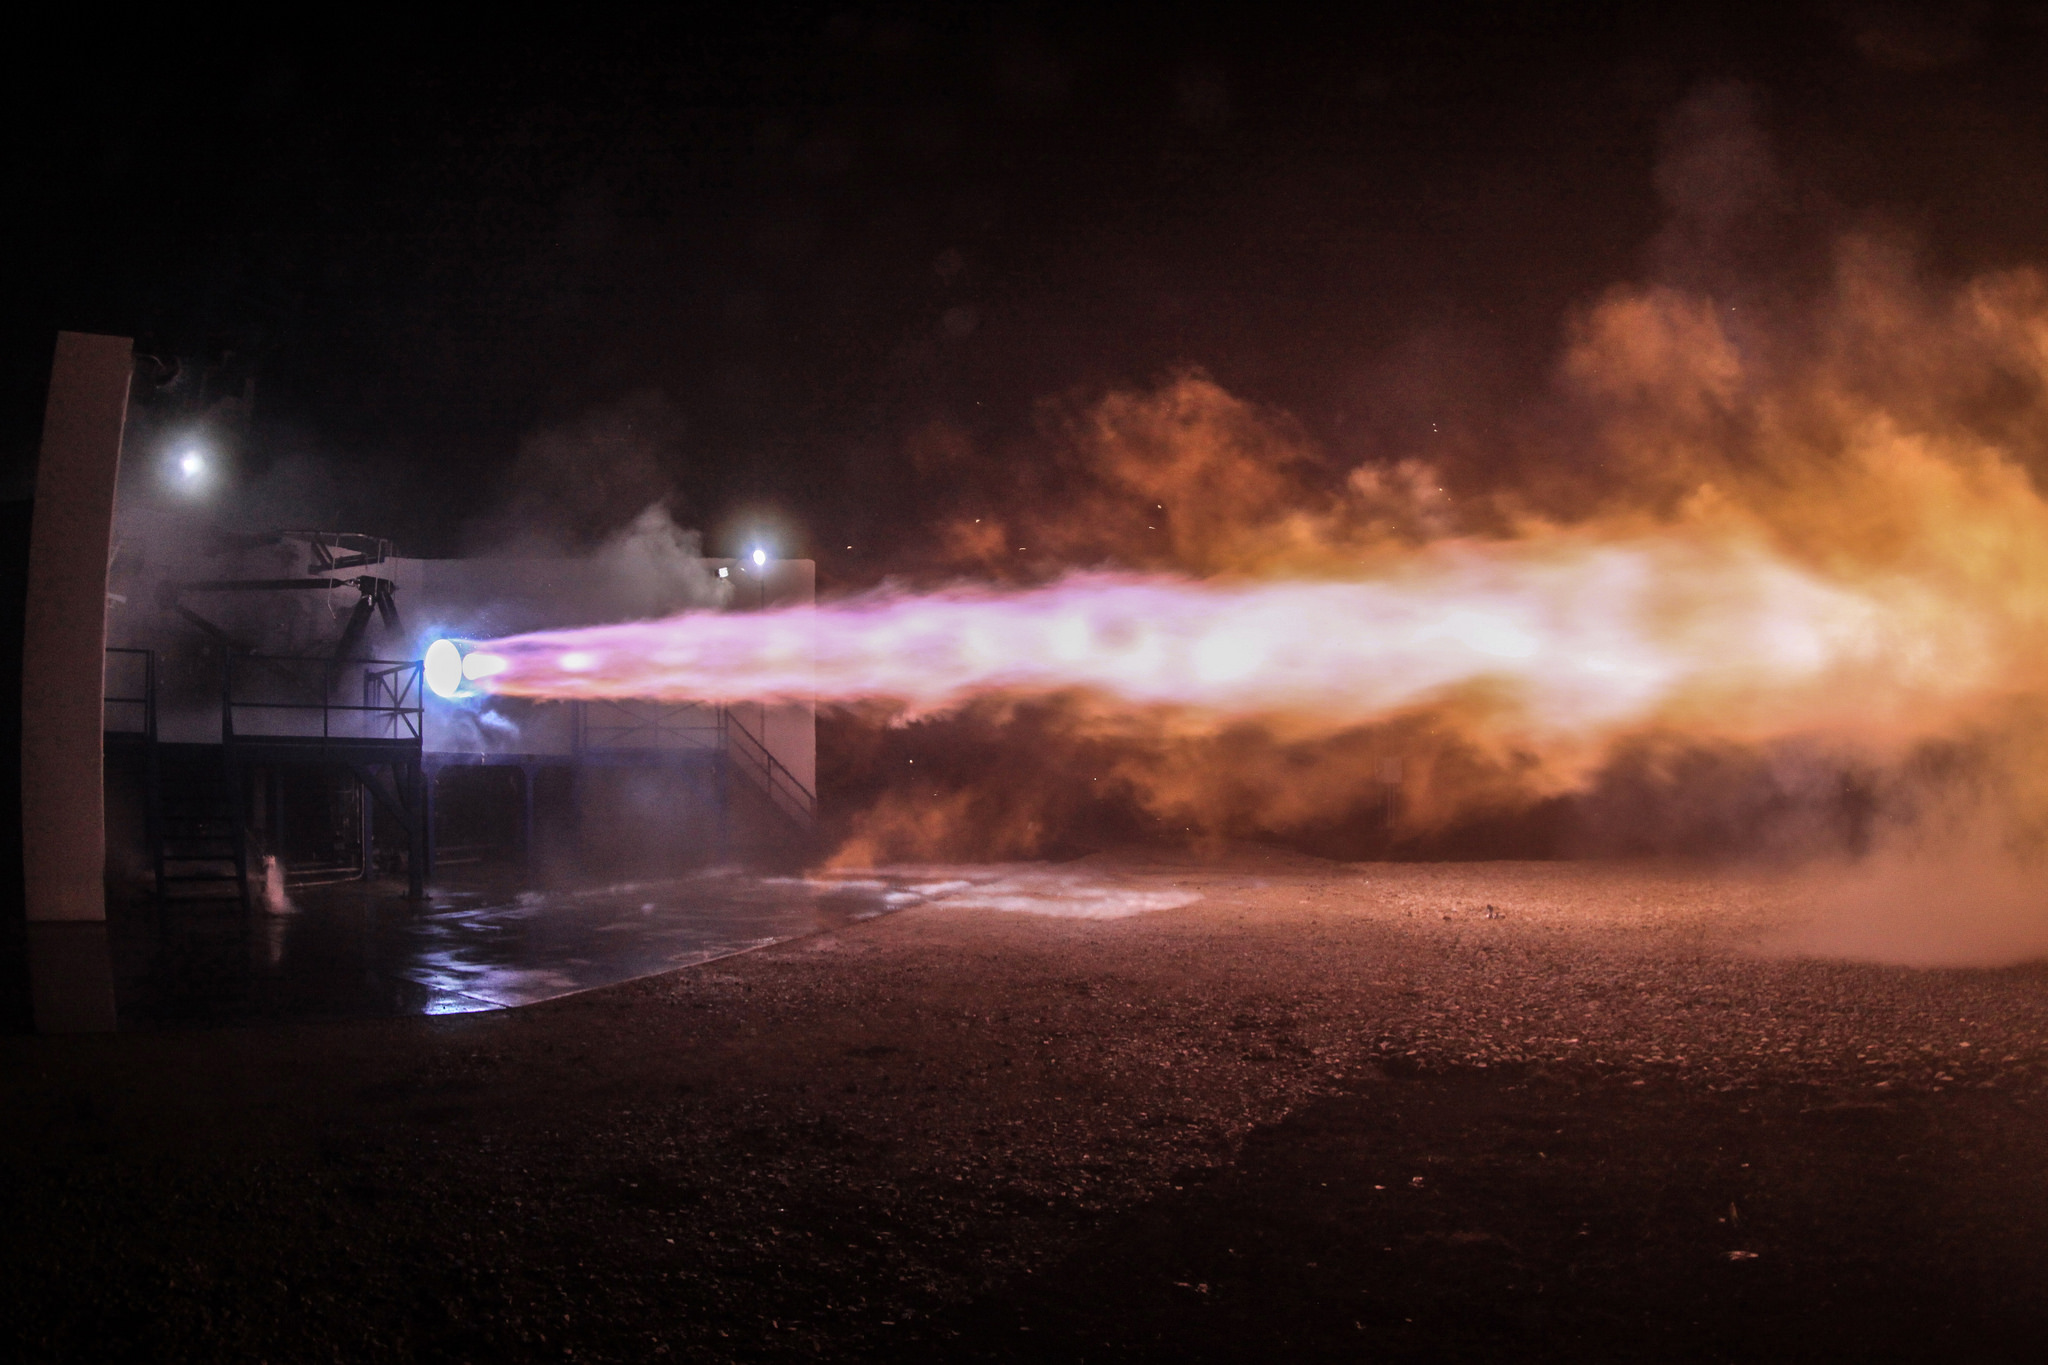 [SpaceX/Flickr]